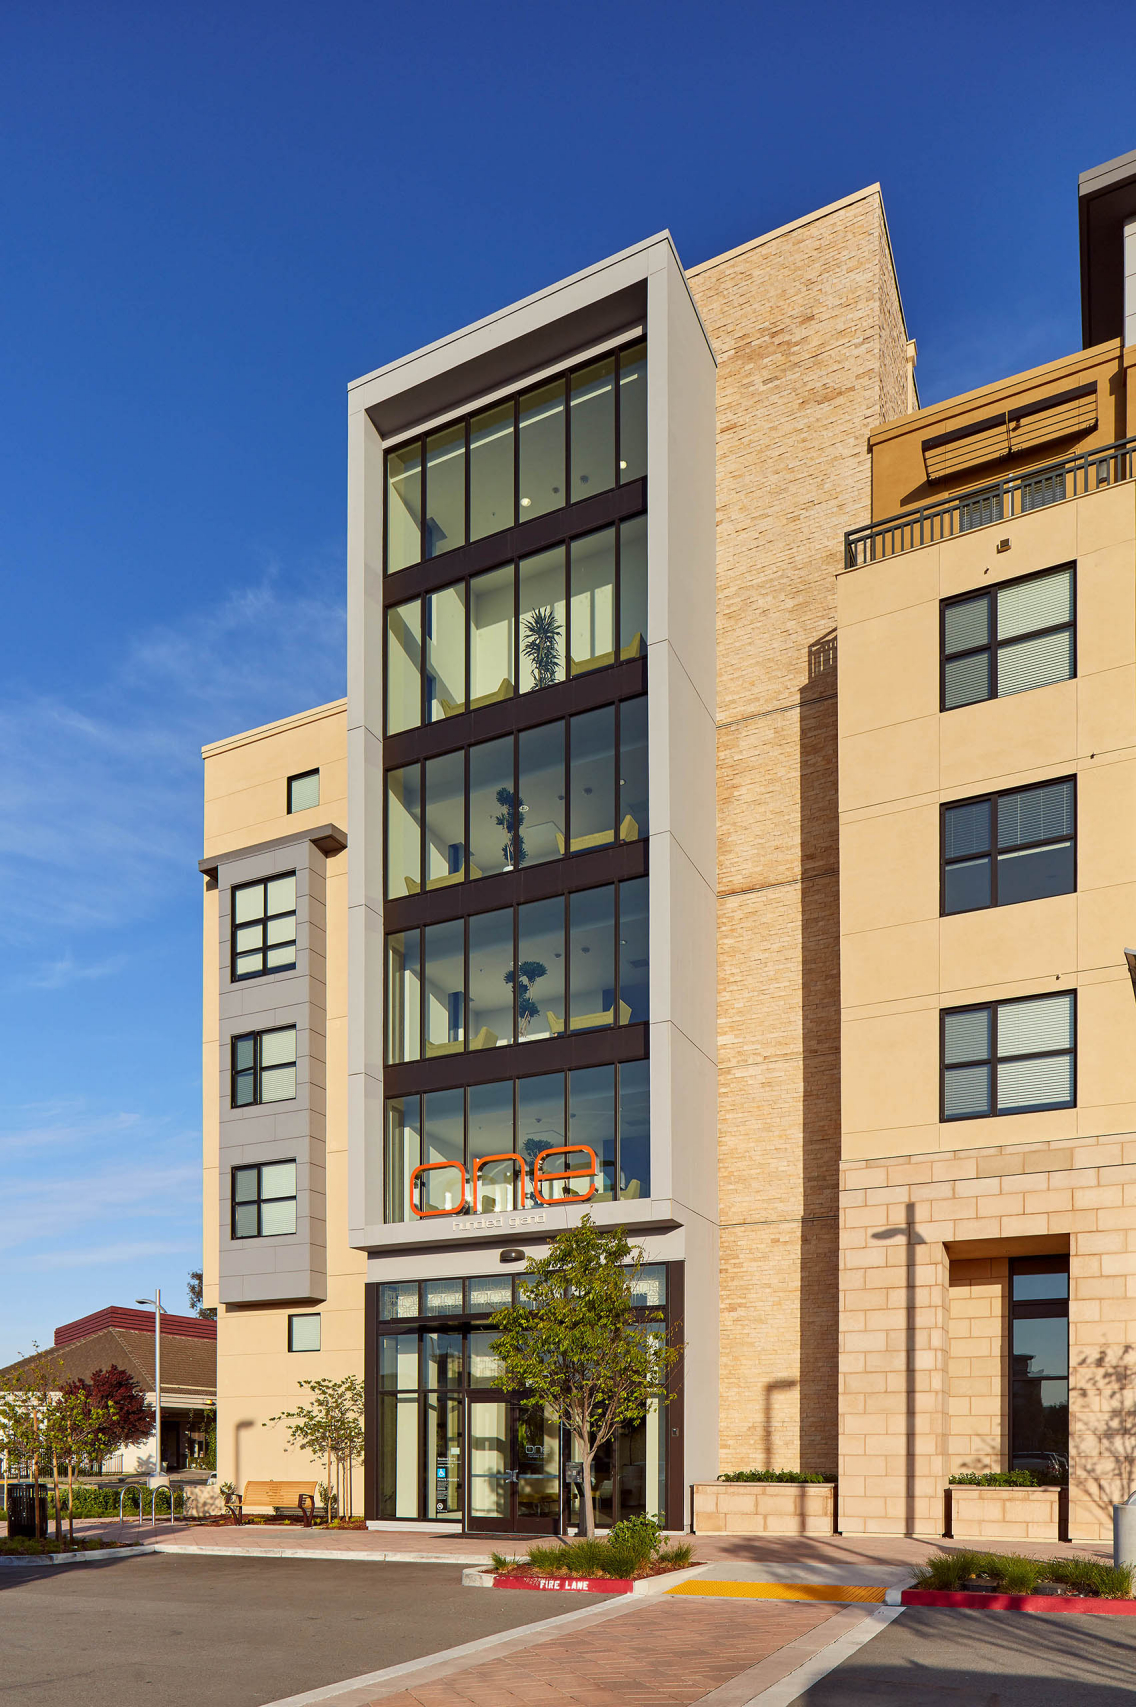 One Hundred Grand Apartments, Seidel Architects